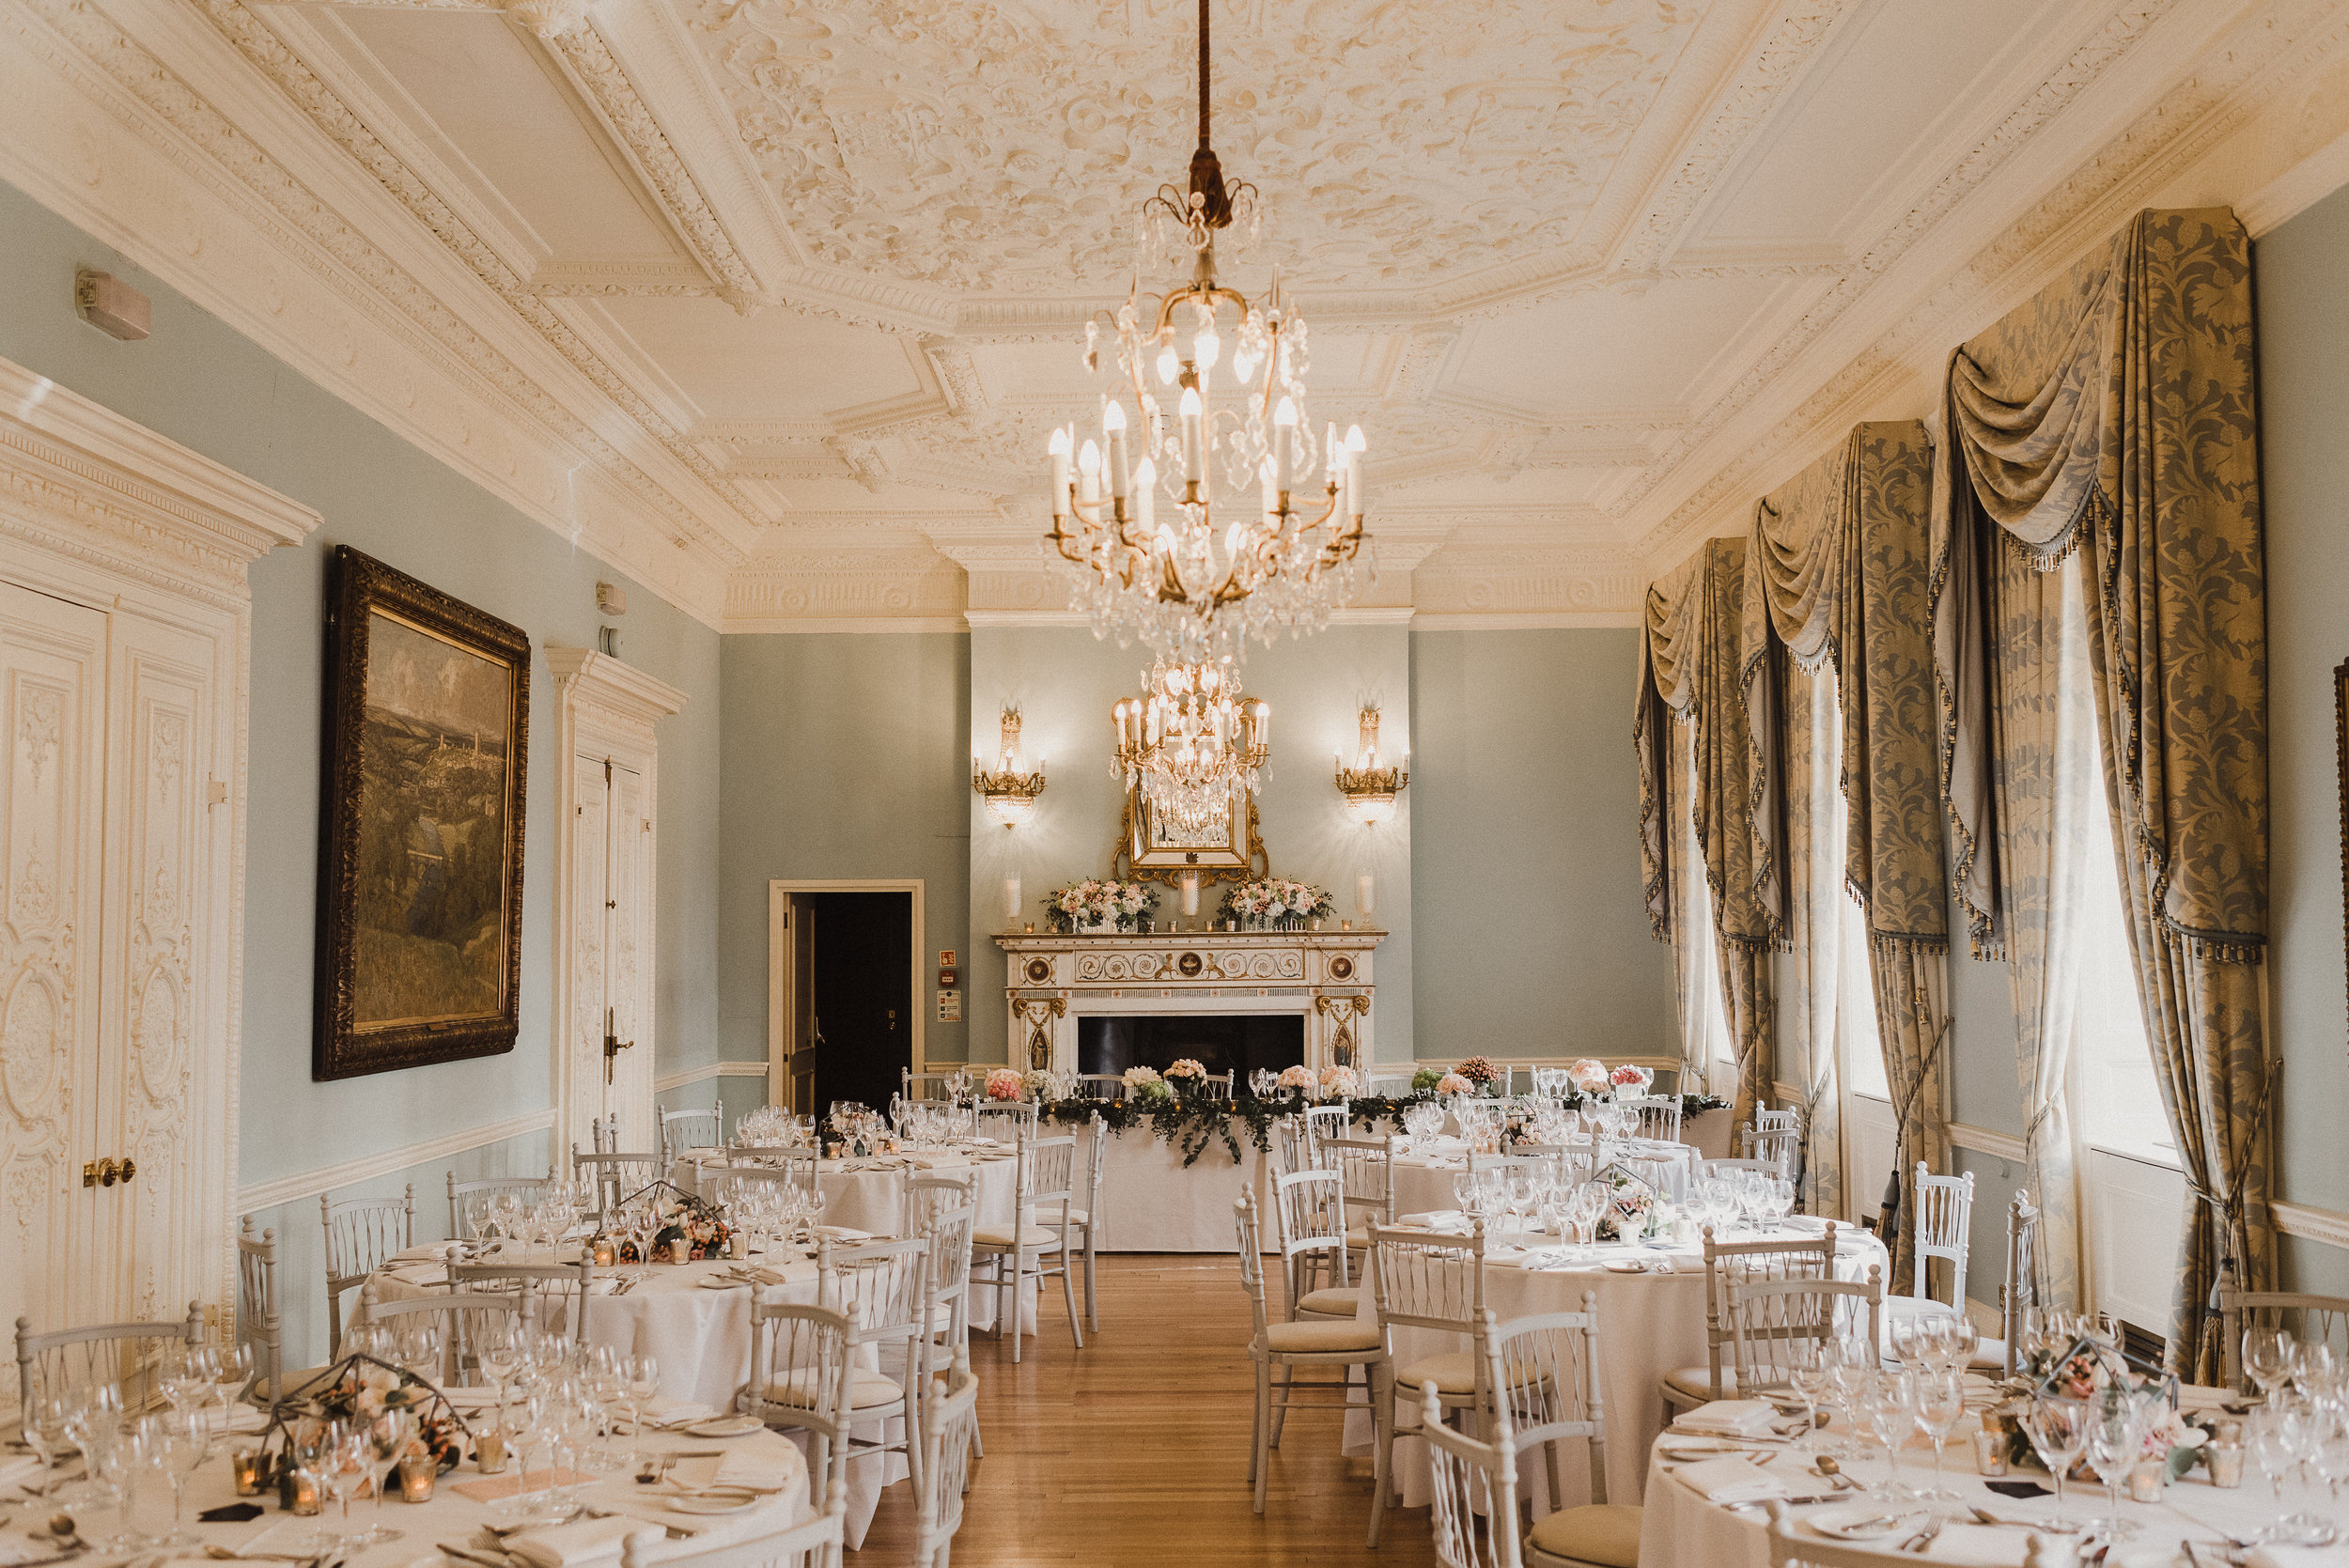 With its beautiful interiors, grand marble staircase and private courtyard, this elegant mansion in the heart of Mayfair is the perfect setting for an exclusive, quintessential London wedding.